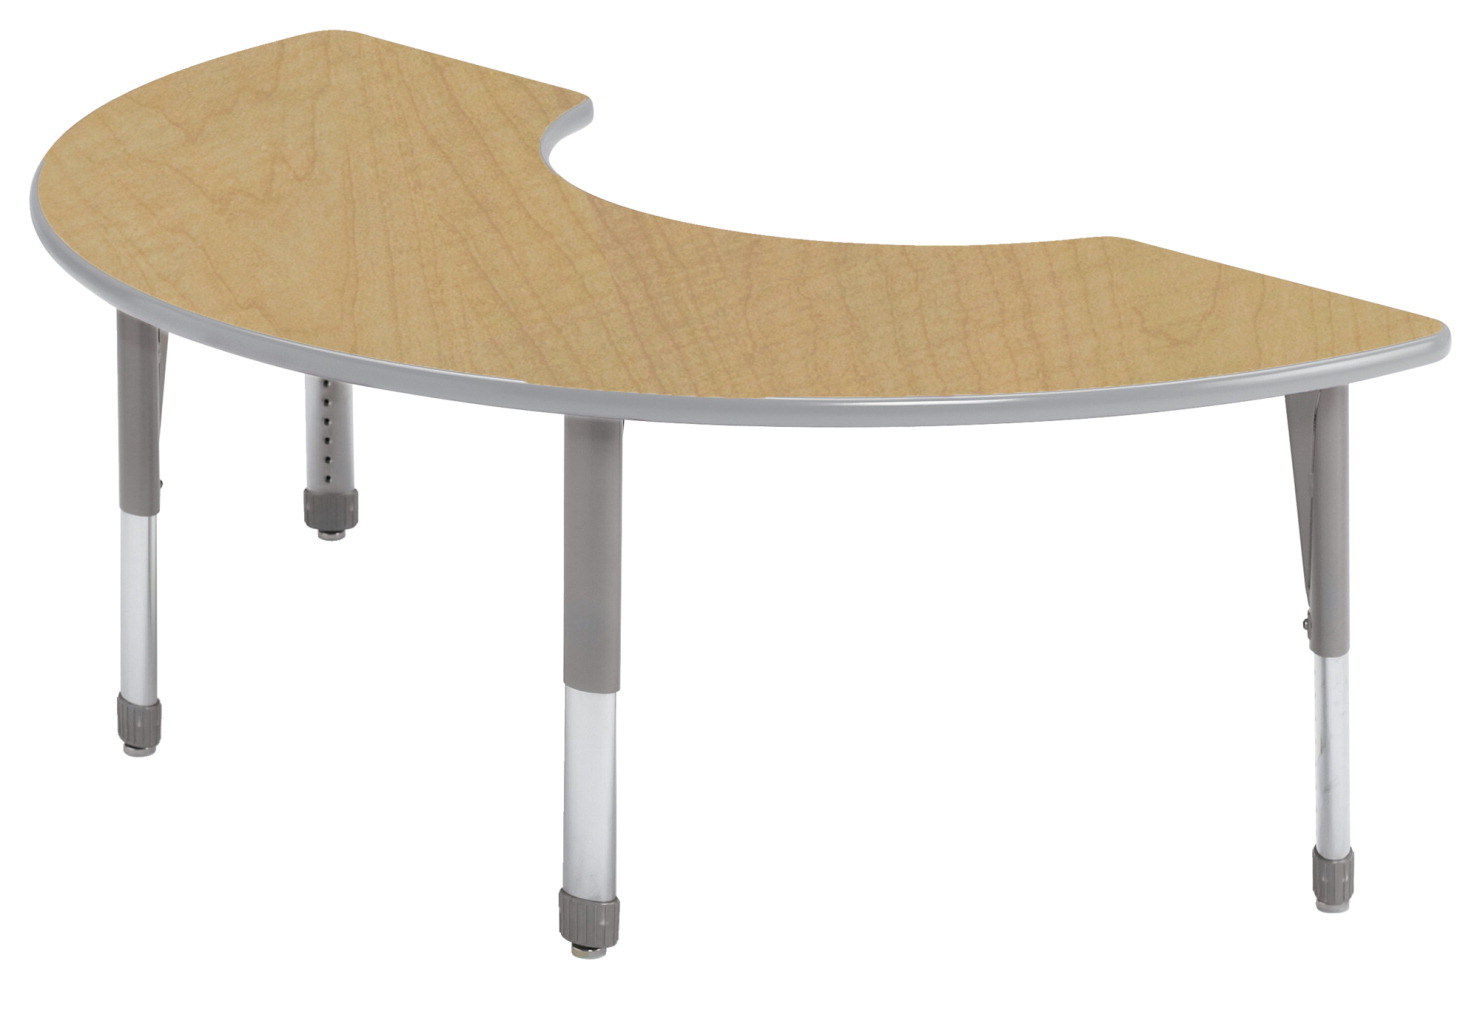 Smith System Interchange Activity Table Half Moon 72 X 36 22 To 34